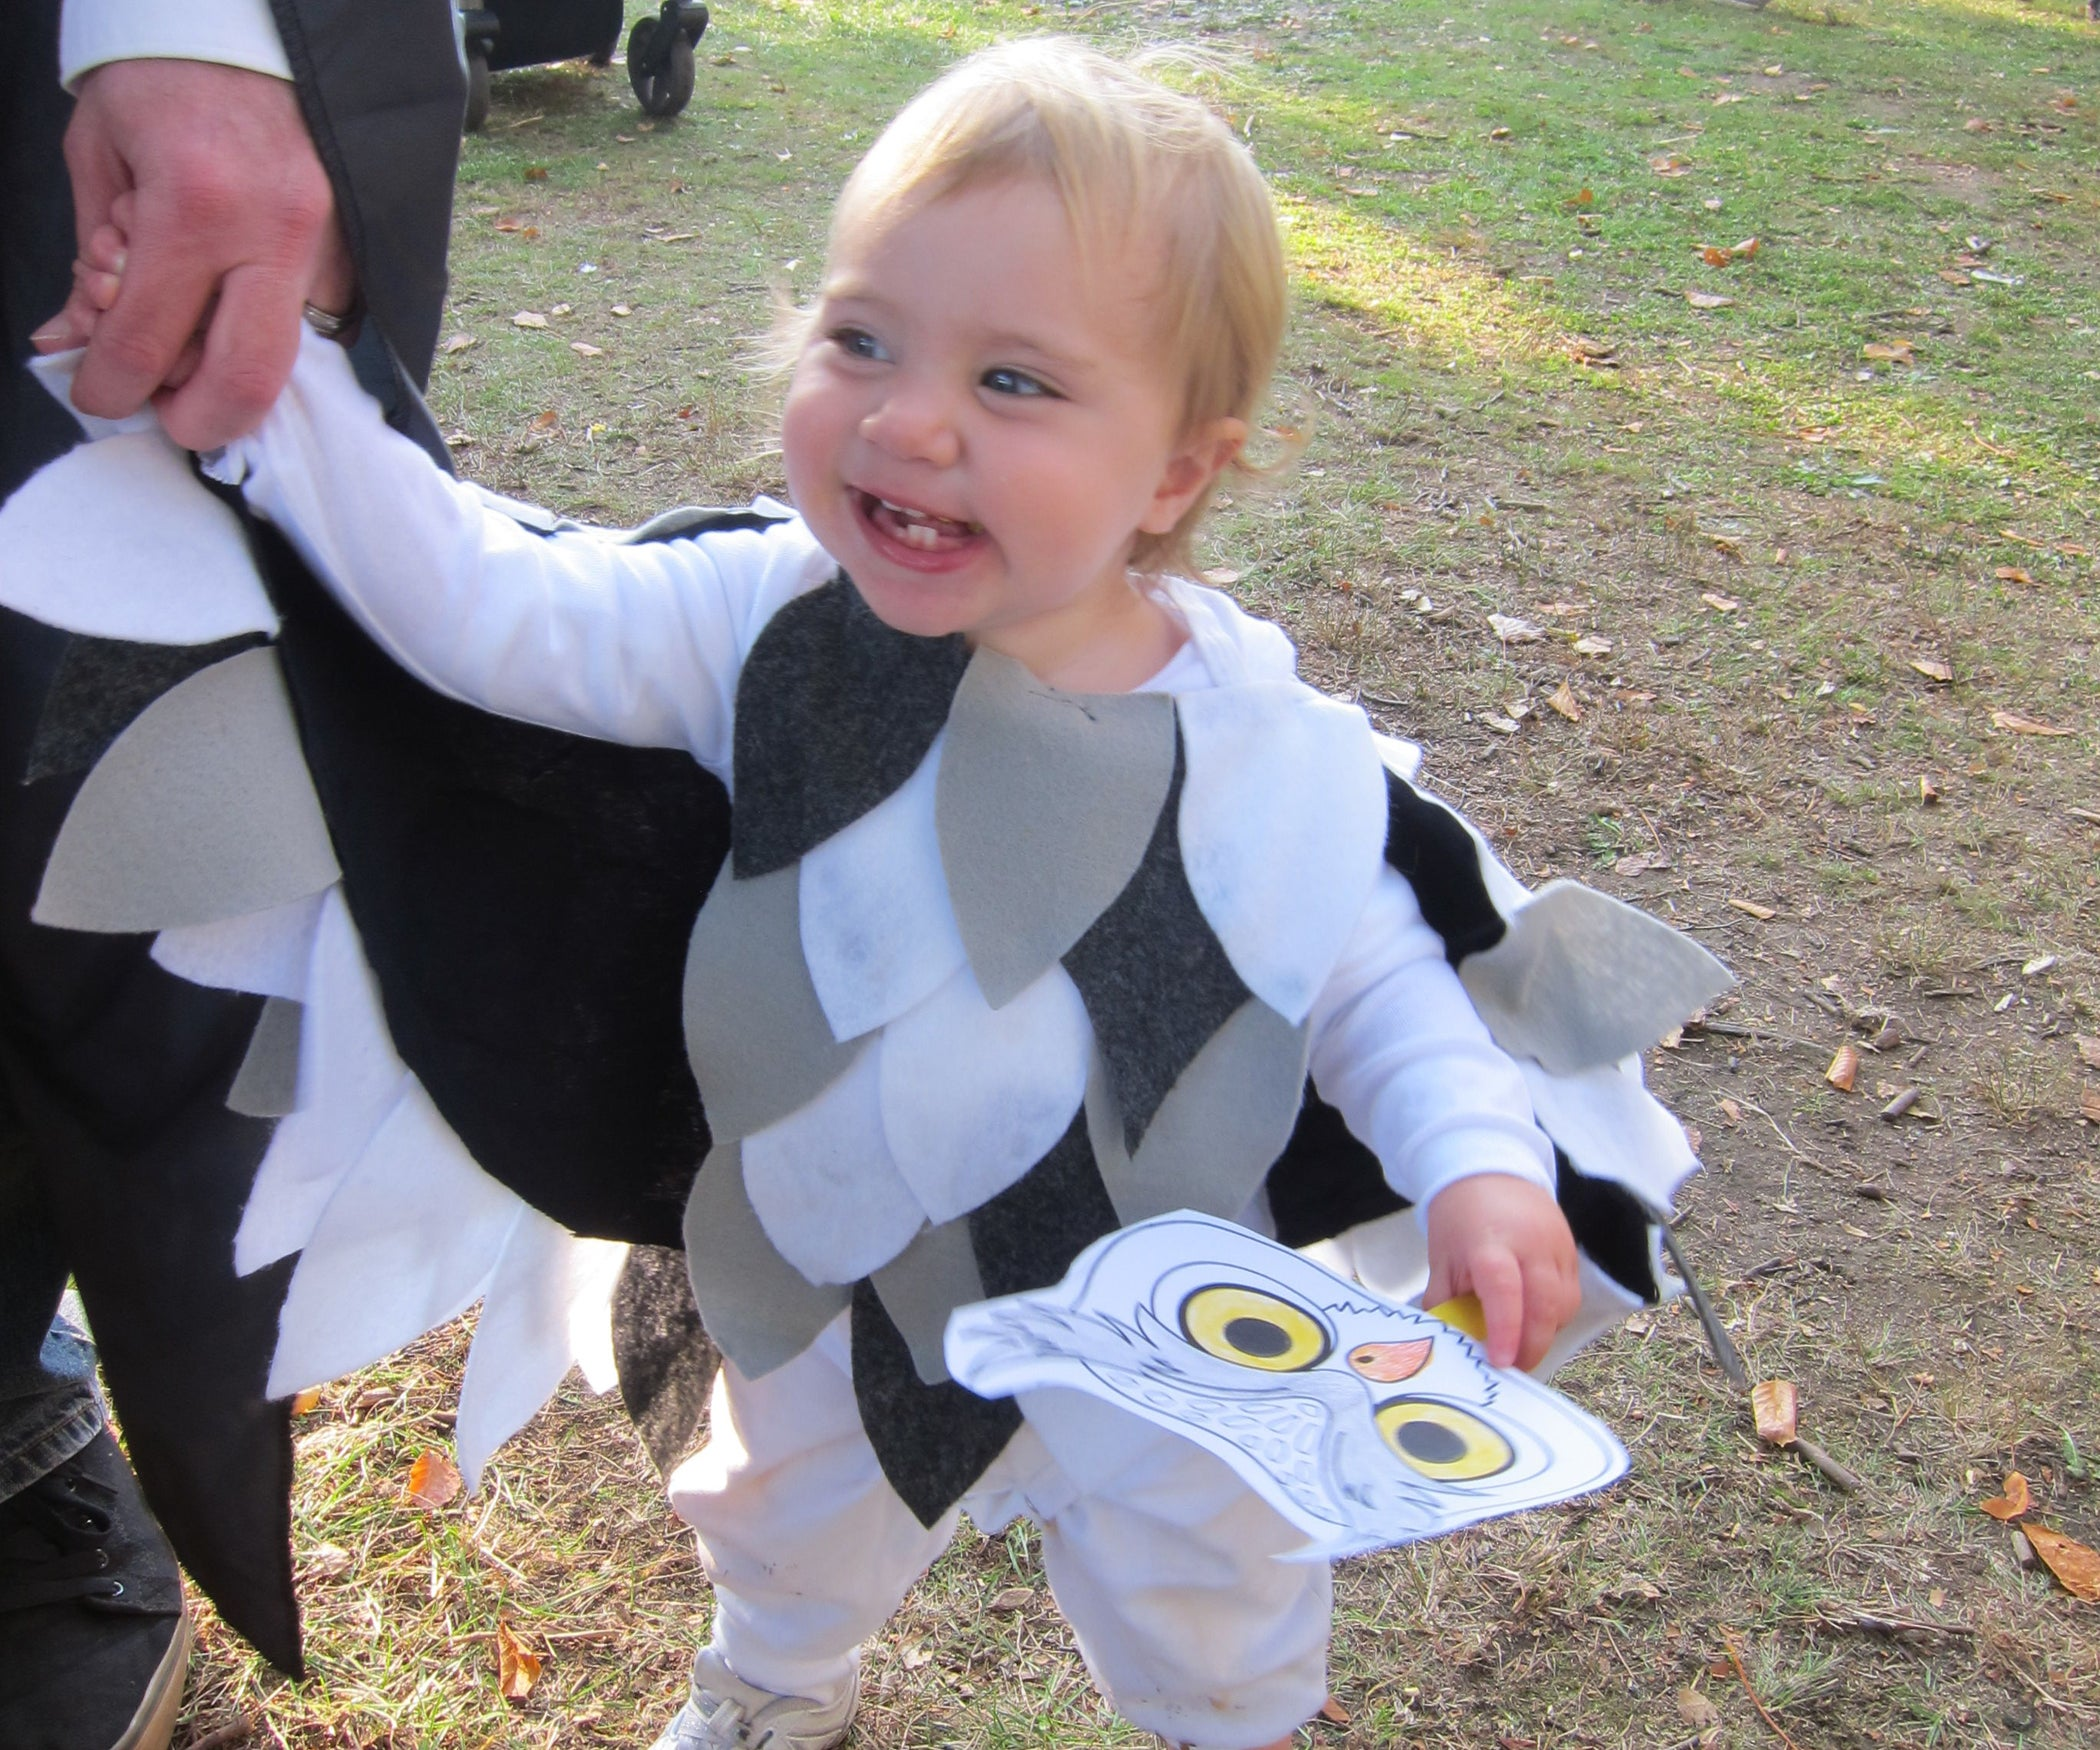 diy no-sew $3 owl costume: 6 steps (with pictures)